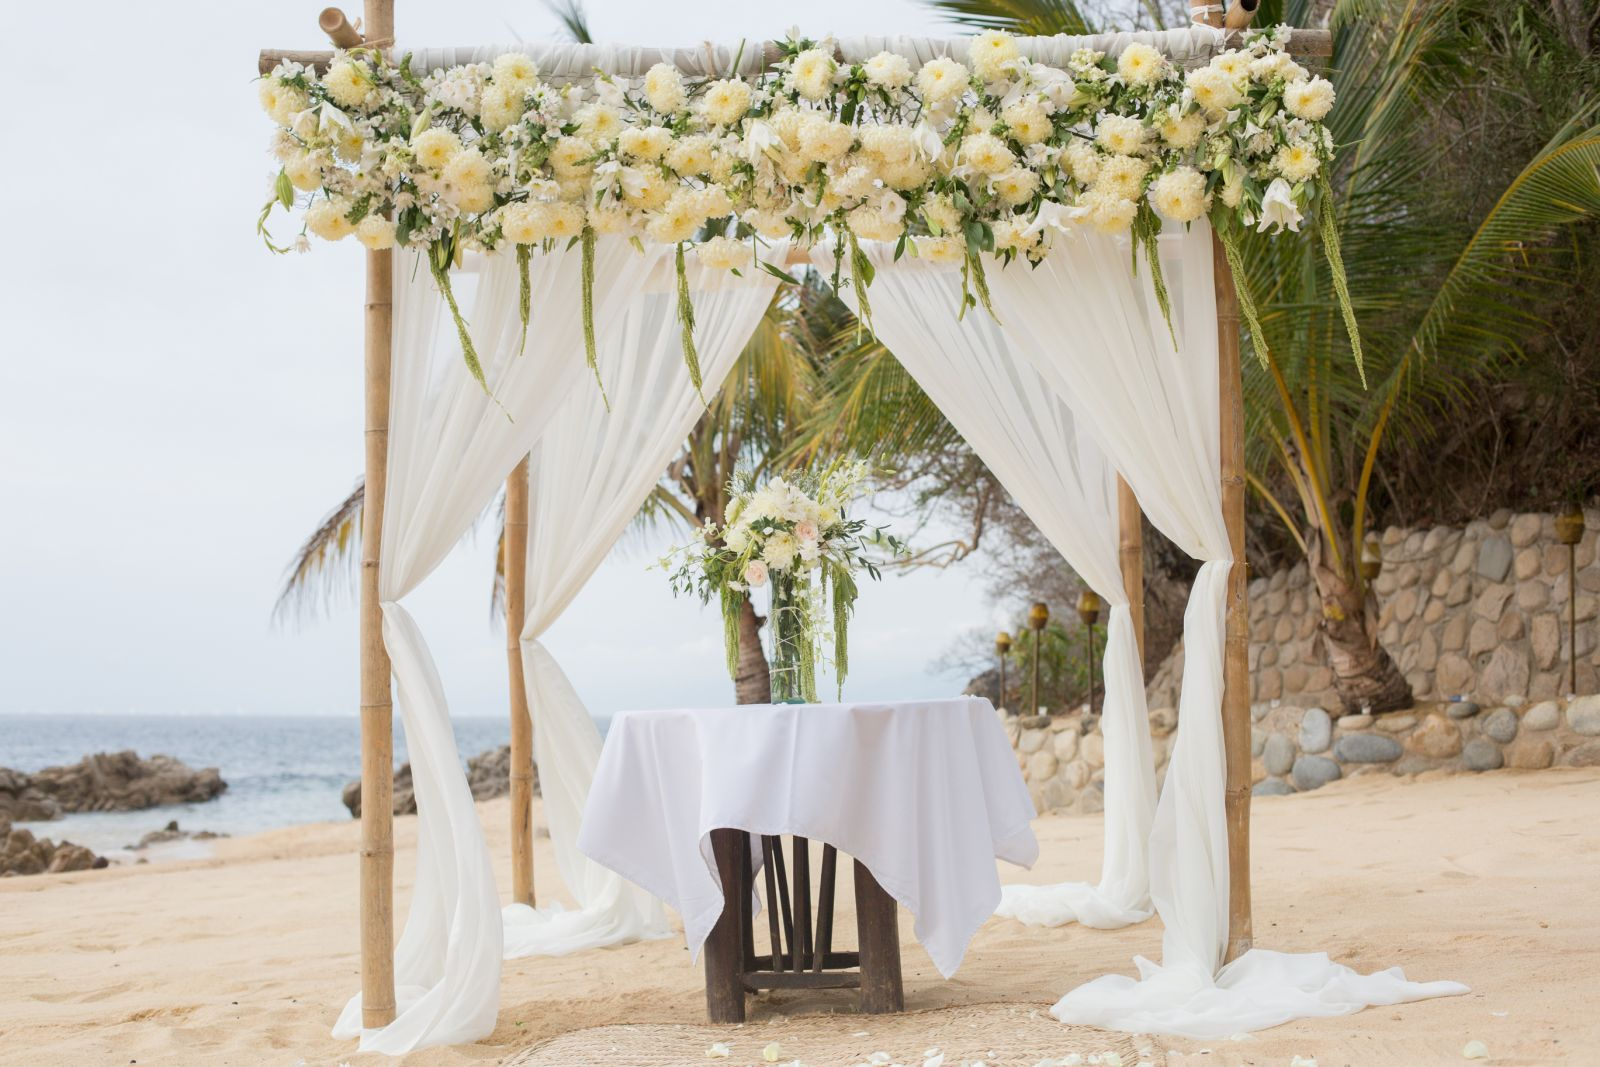 flowers decoraton for the beach ceremony